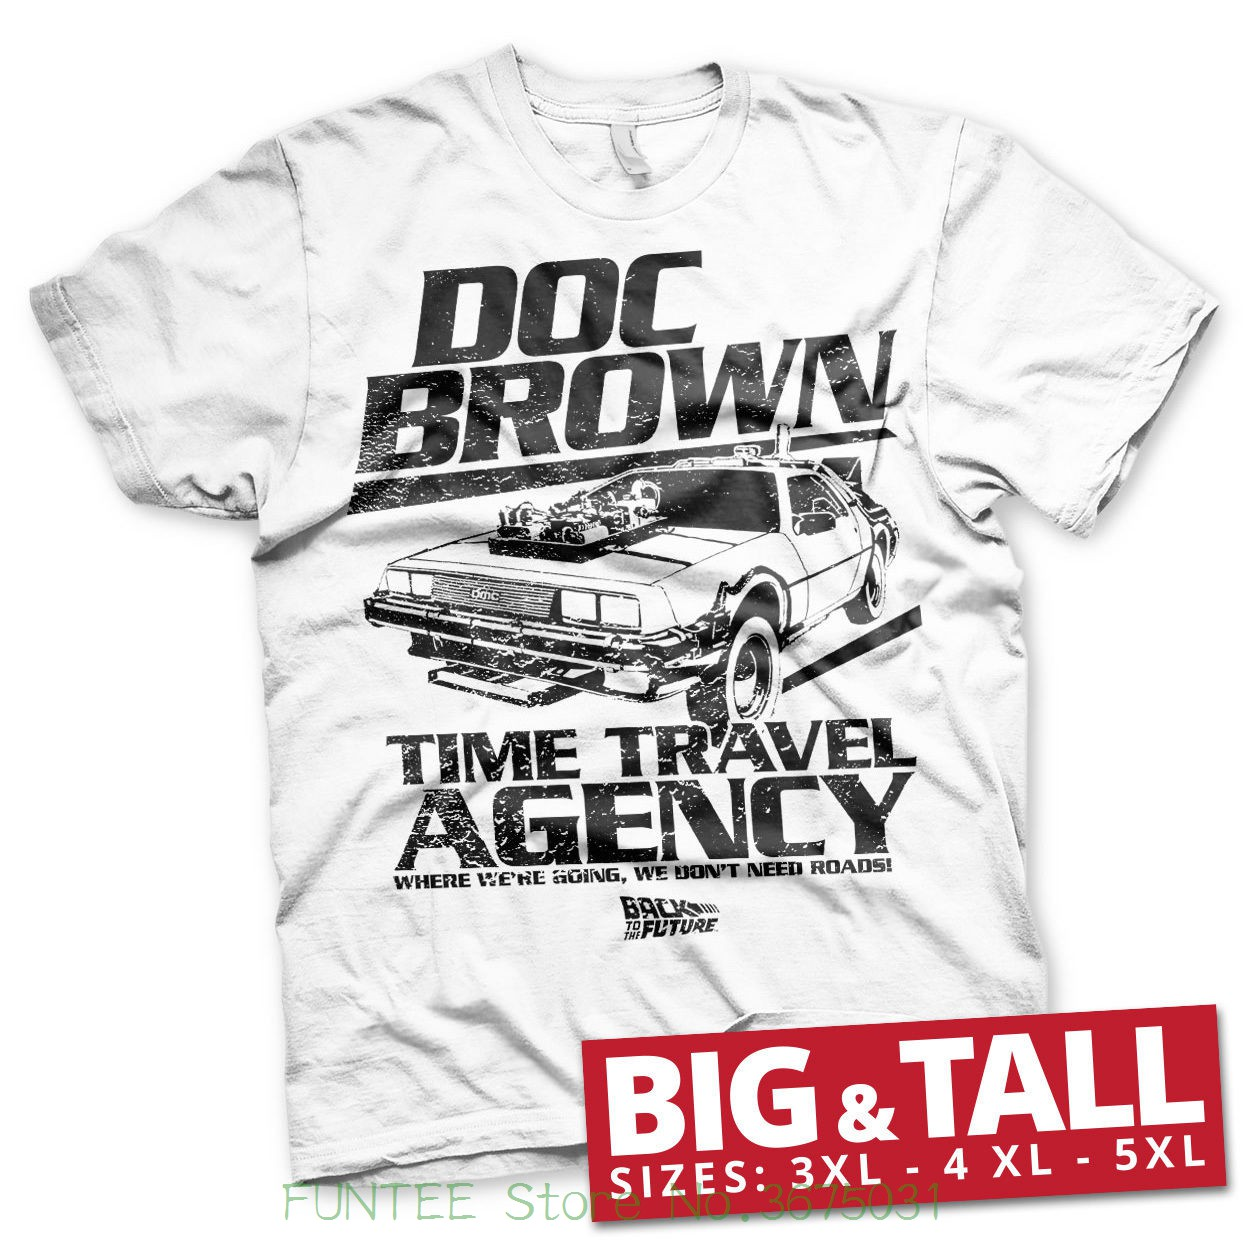 O Neck Tee Shirt Short Sleeve Officially Licensed Doc Brown Time Travel Agency 3xl , 4xl , 5xl Mens T-shirt